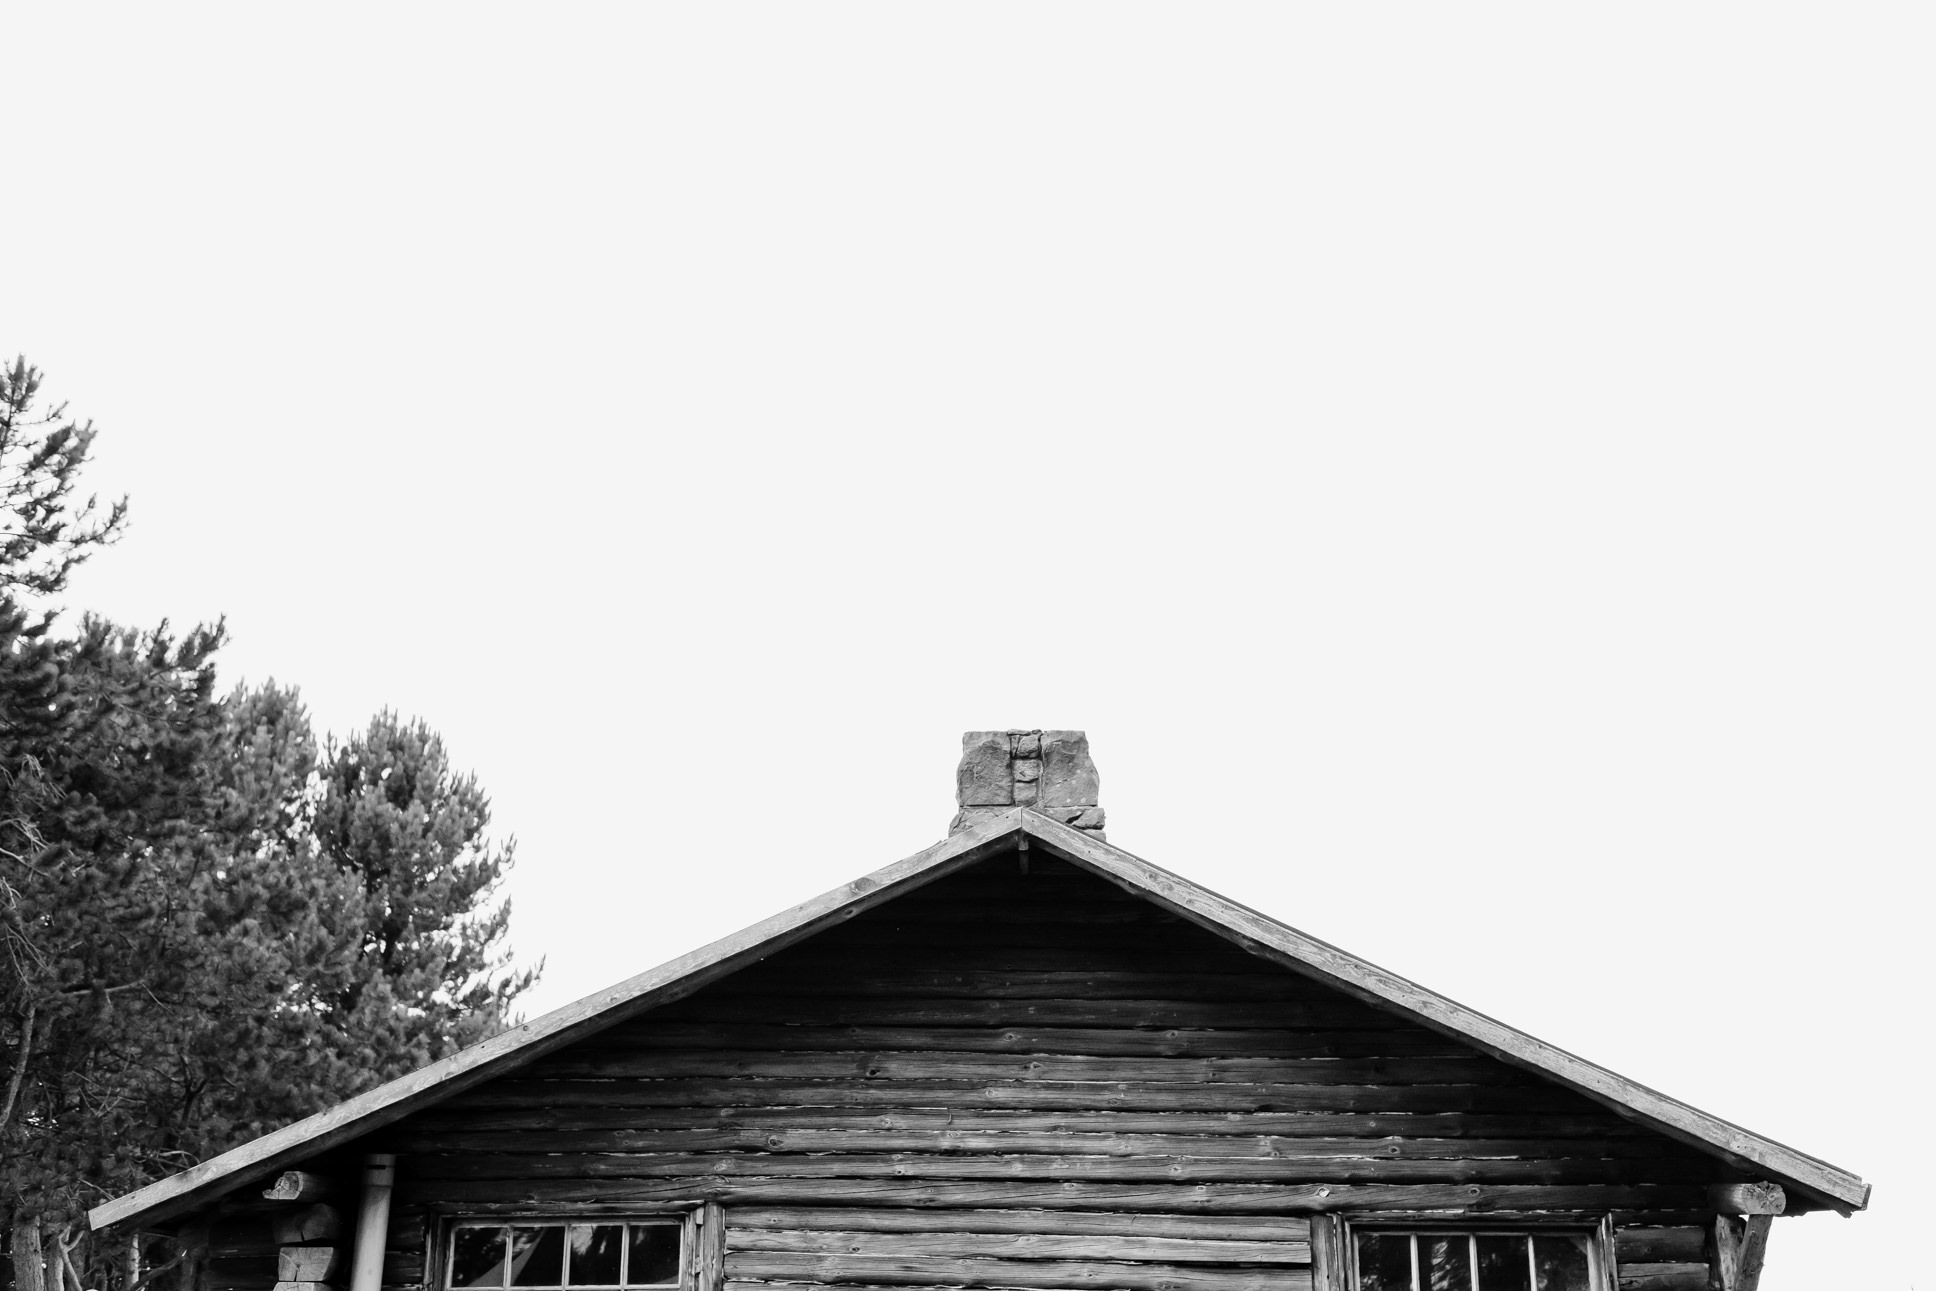 Black and white photograph of the top of the log cabin at Ravensheugh, Dubar.